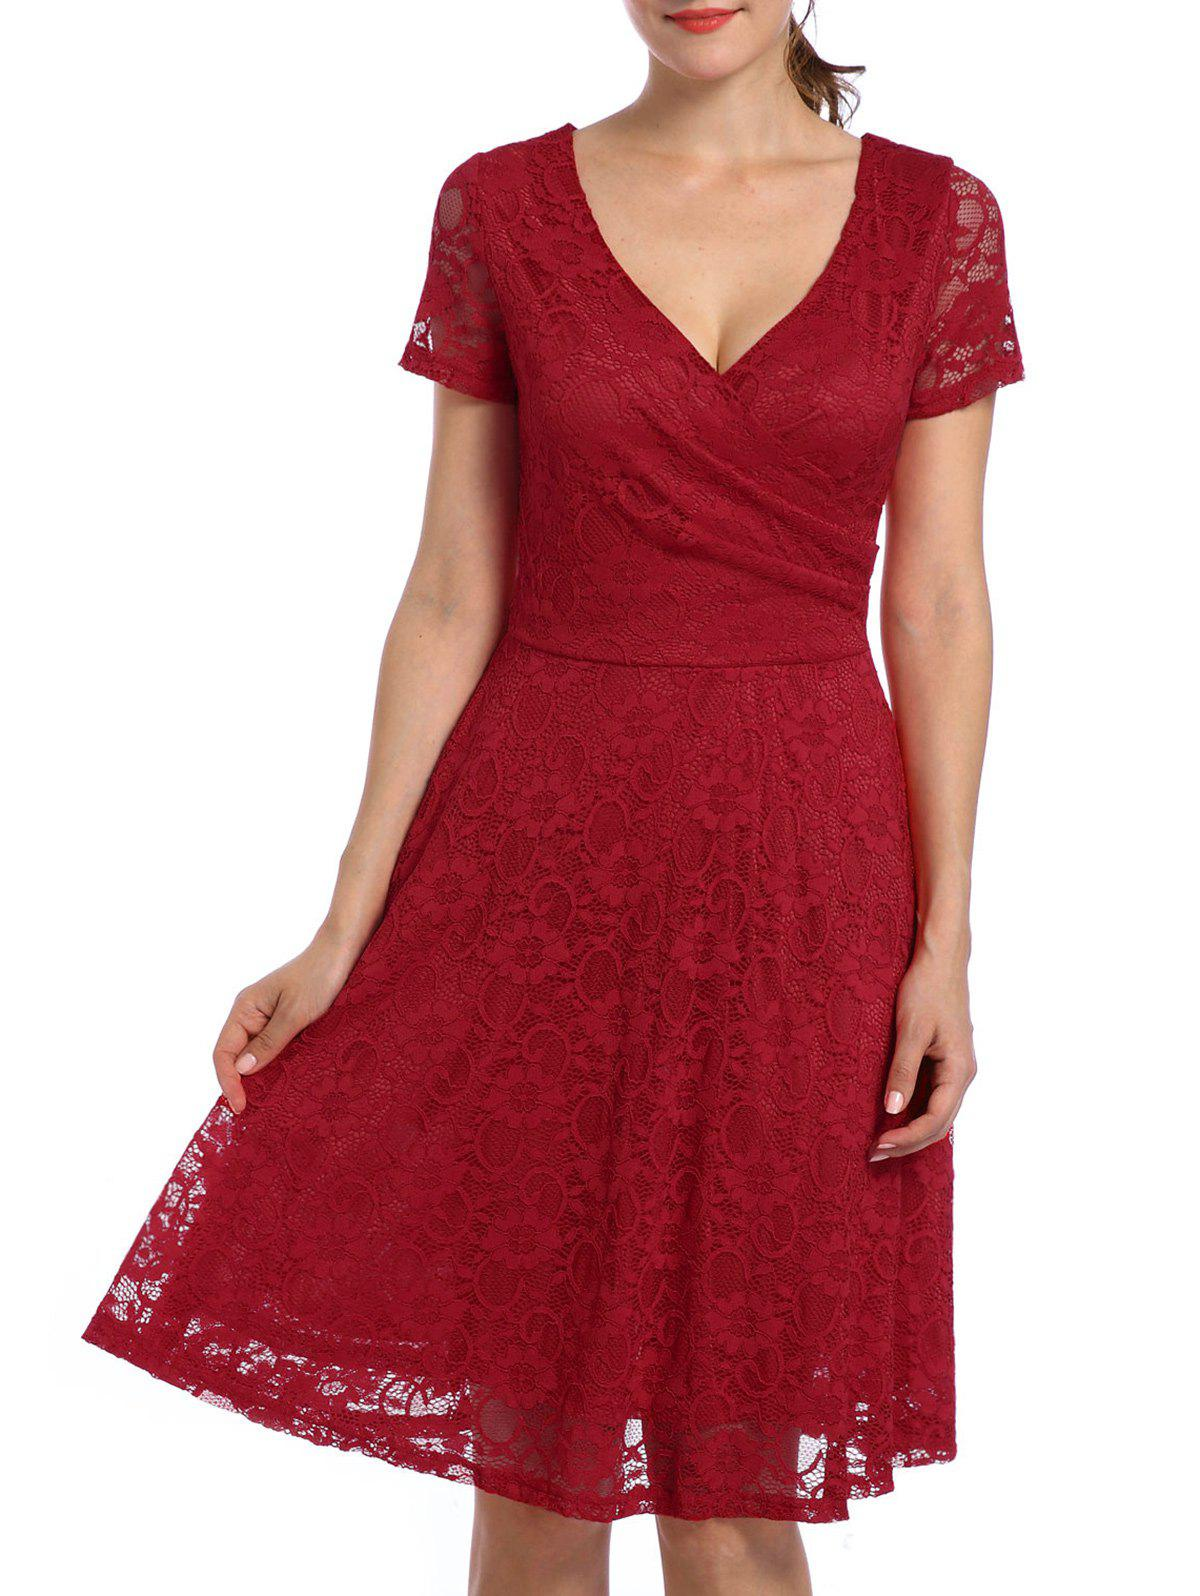 Online Lace High Waist Surplice Cocktail Dress